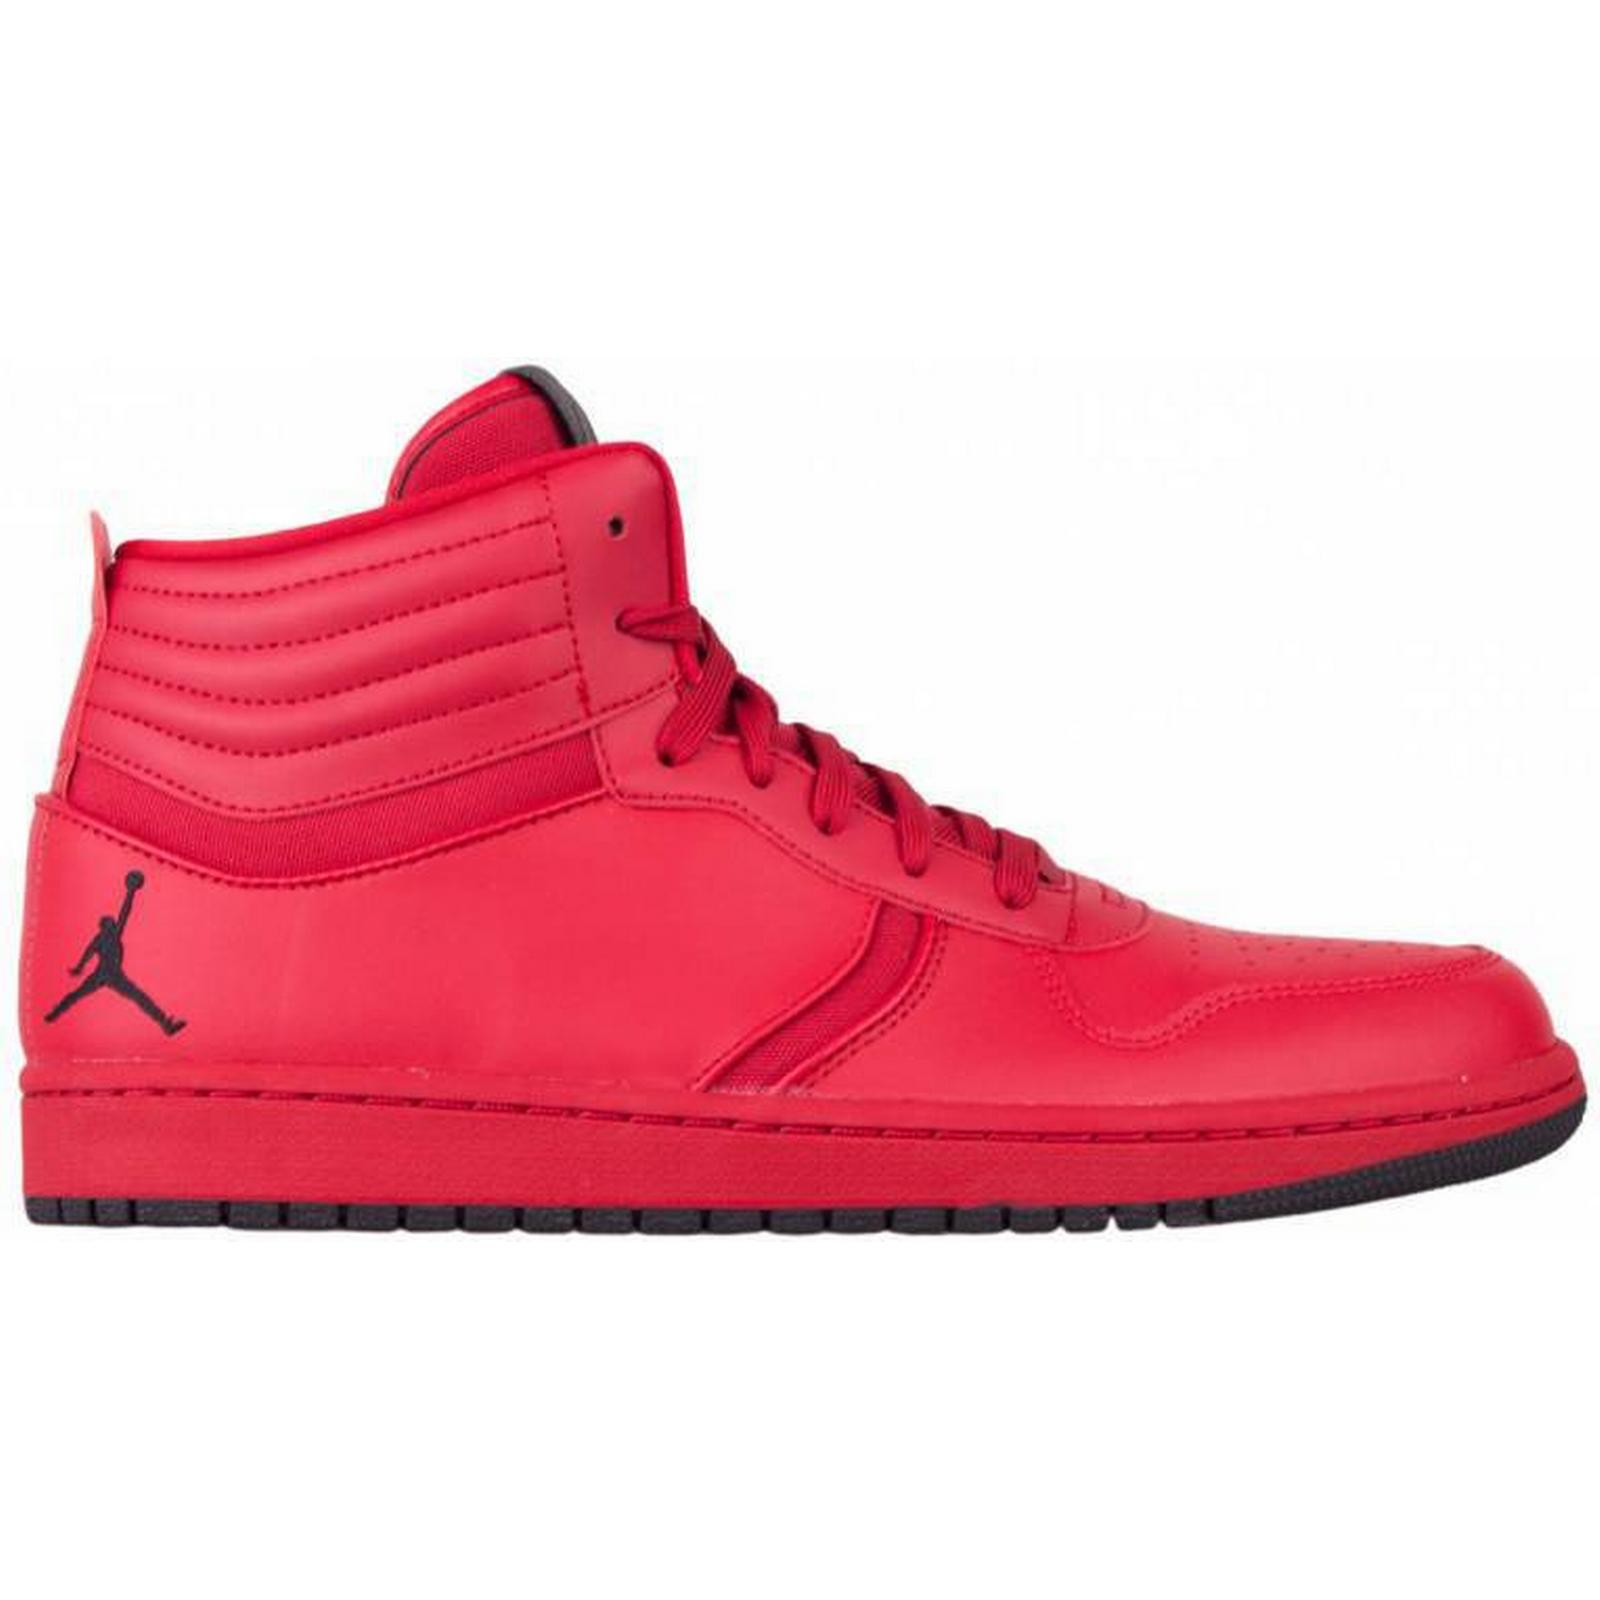 Man's/Woman's-Gentleman/Lady:Nike Jordan Heritage:To welcome- Extremely Extremely welcome- Practical 5d2471